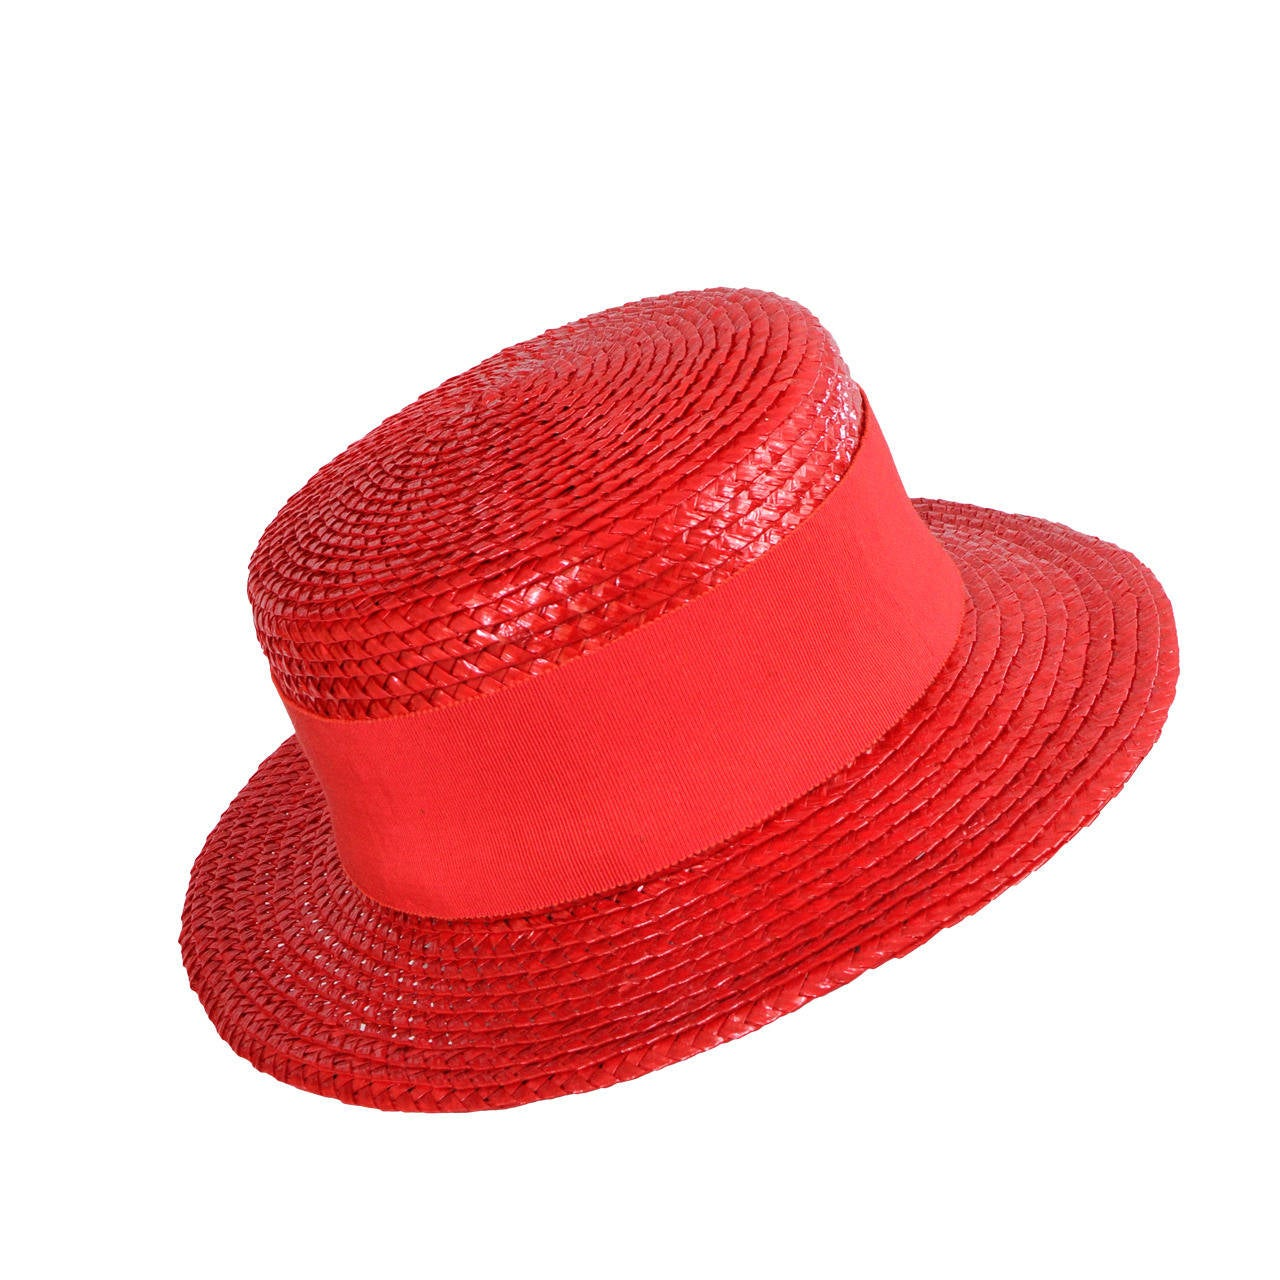 Givenchy Couture Red Straw Boater For Sale